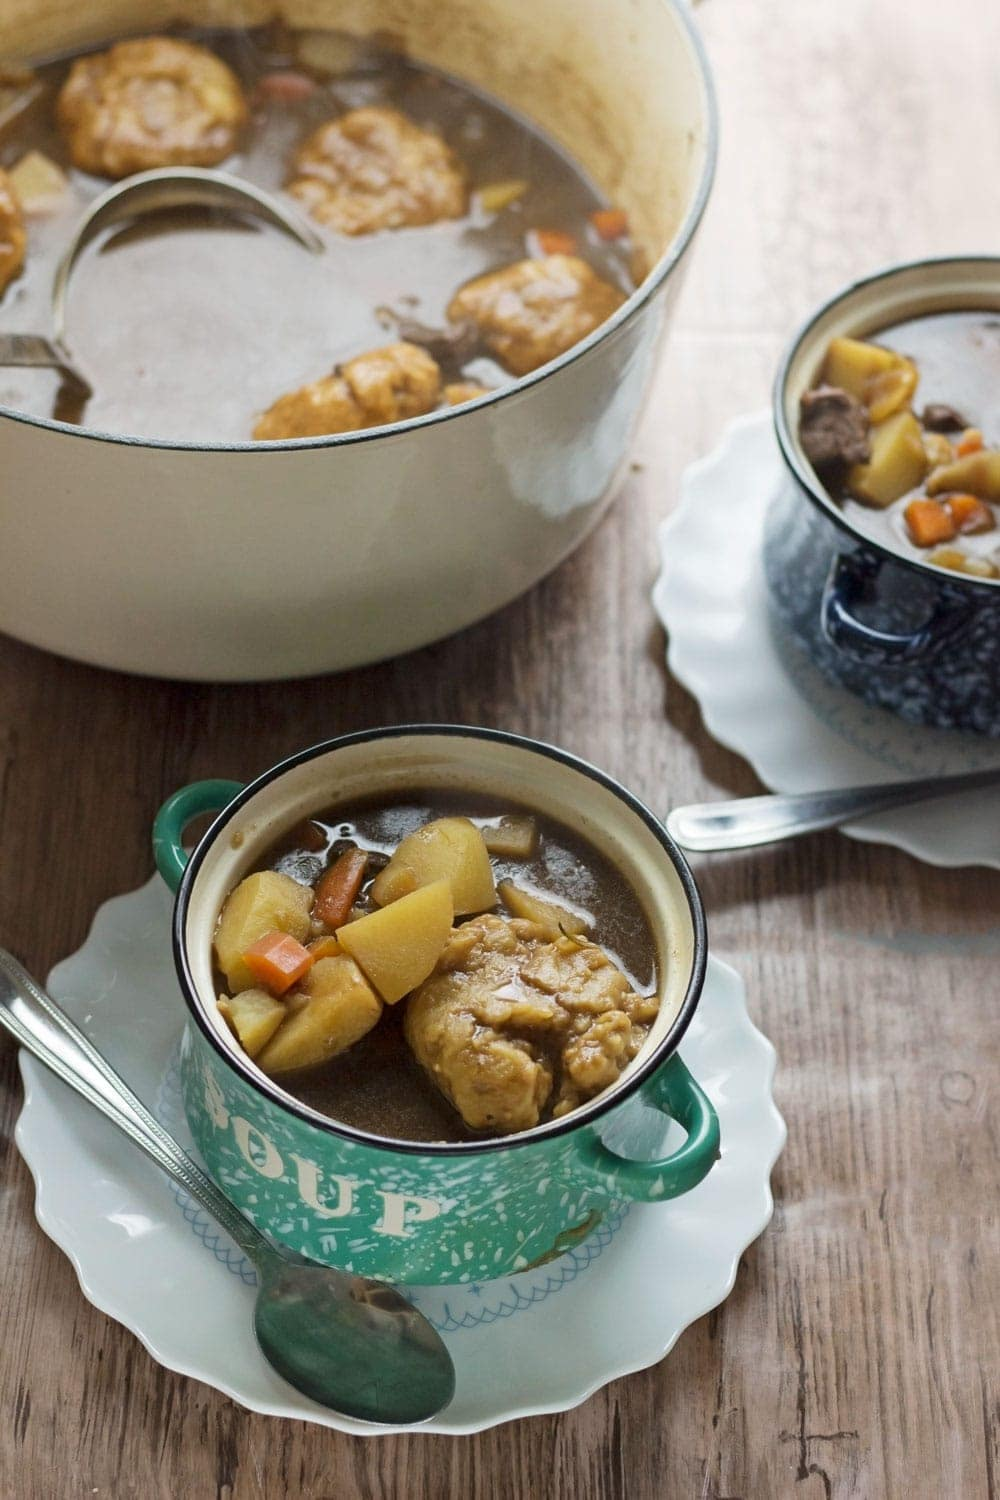 Beef vegetable soup with dumplings is super comforting & the perfect recipe for a Sunday treat. It's flavoured with rosemary & hearty from the potatoes.